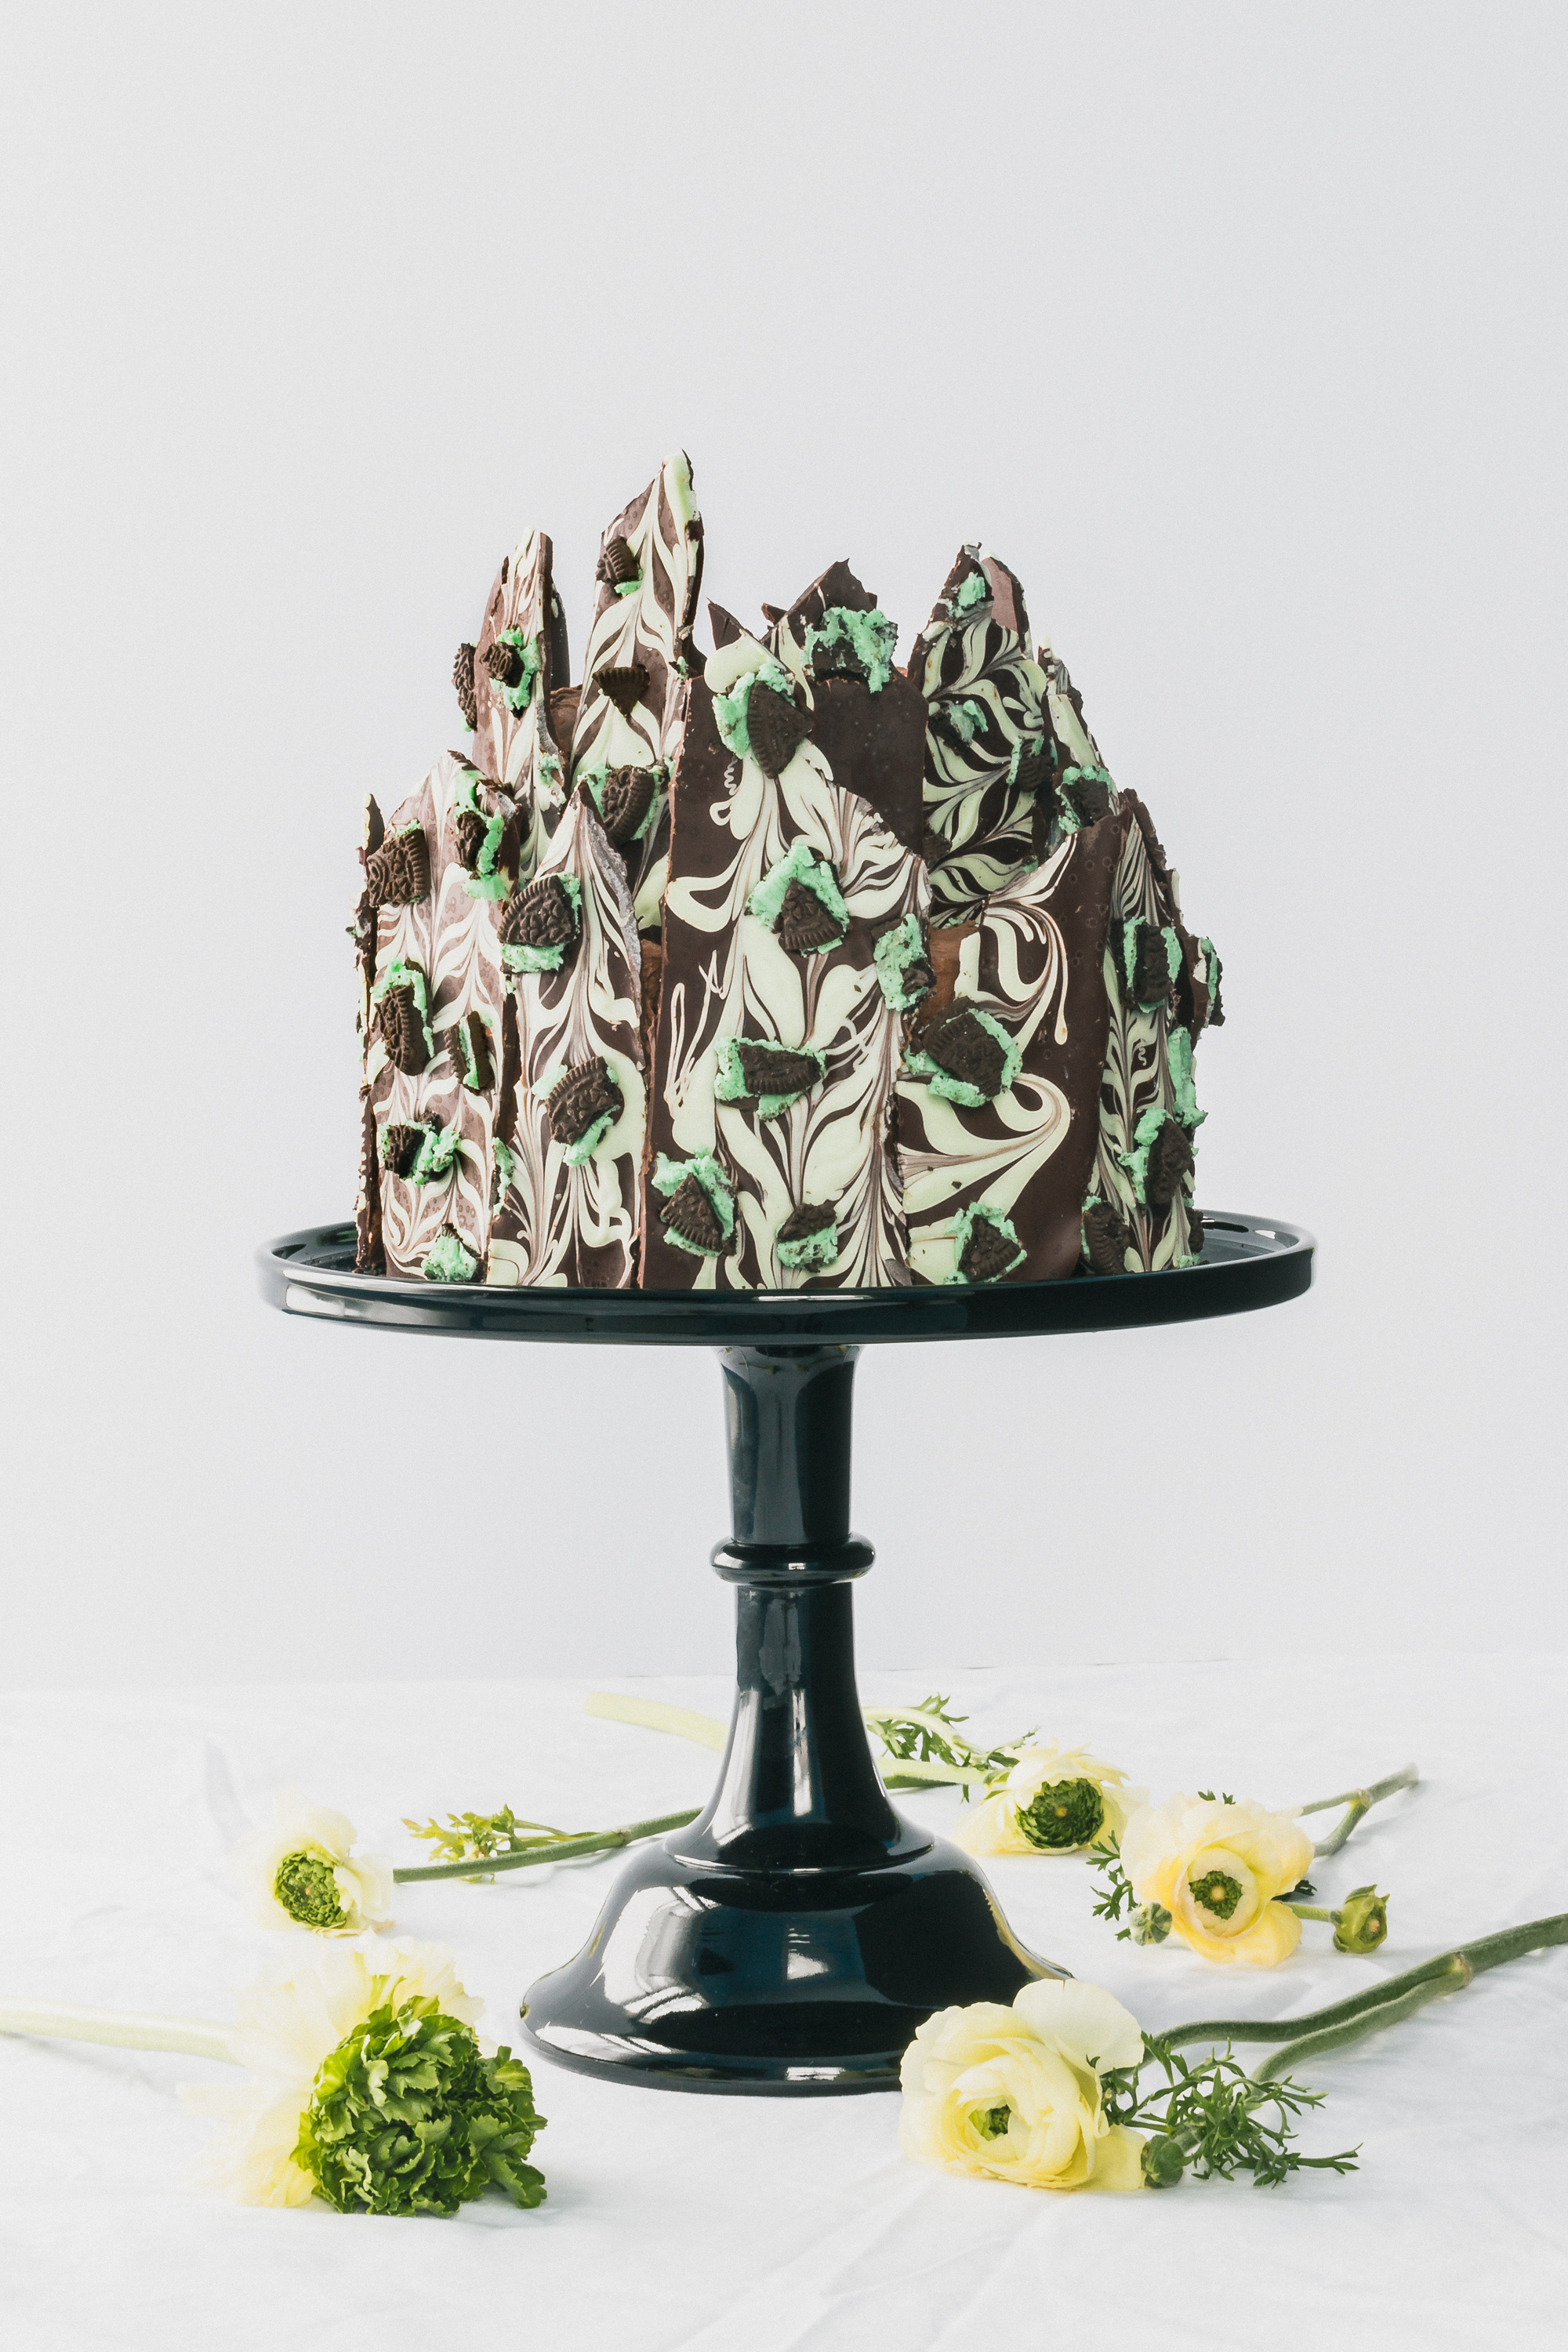 Chocolate Irish Creme Cake with Chocolate Mint Oreo Bark - This Irish Creme Cake with chocolate layers, a fluffy Irish cream liqueur buttercream frosting & chocolate mint Oreo bark will have the luck of the Irish in your favor. A fun dessert for Saint Patricks Day or any day you need a boozy fix. Click for RECIPE.